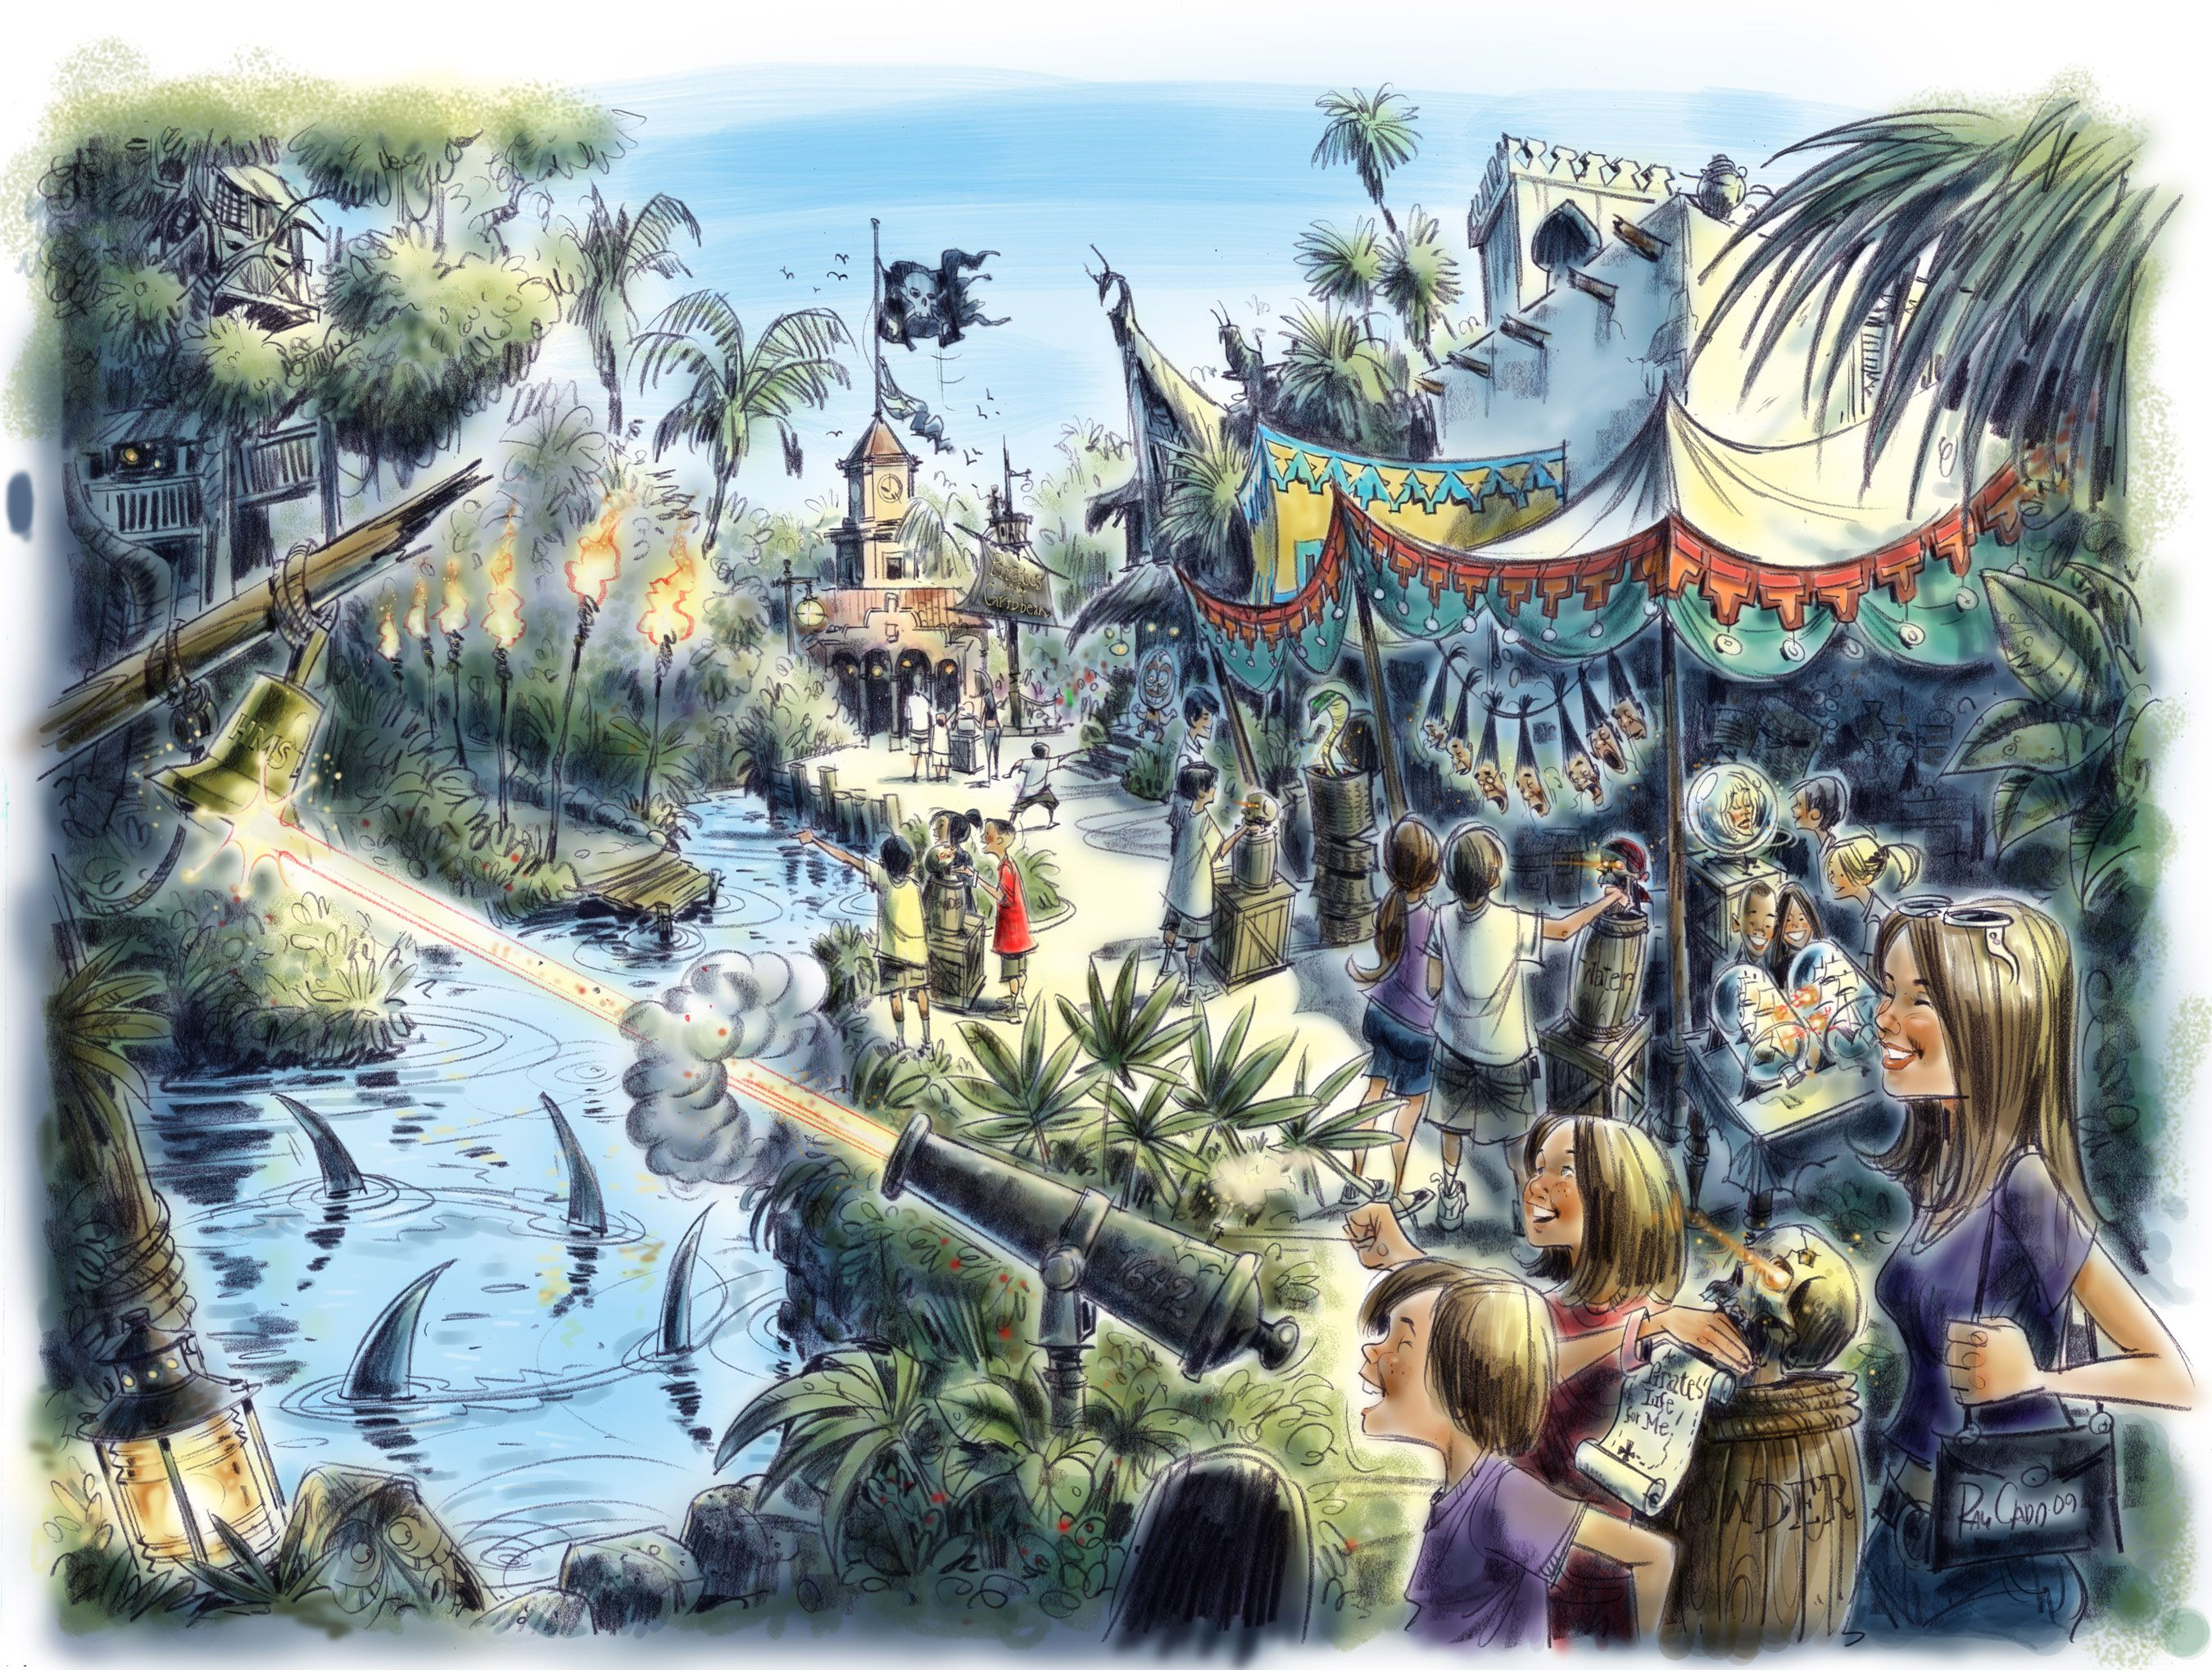 New Interactive Pirate Game To Debut at The Magic Kingdom – A Pirate's Adventure: Treasures of Seven Seas - TouringPlans.com Blog   TouringPlans.com Blog